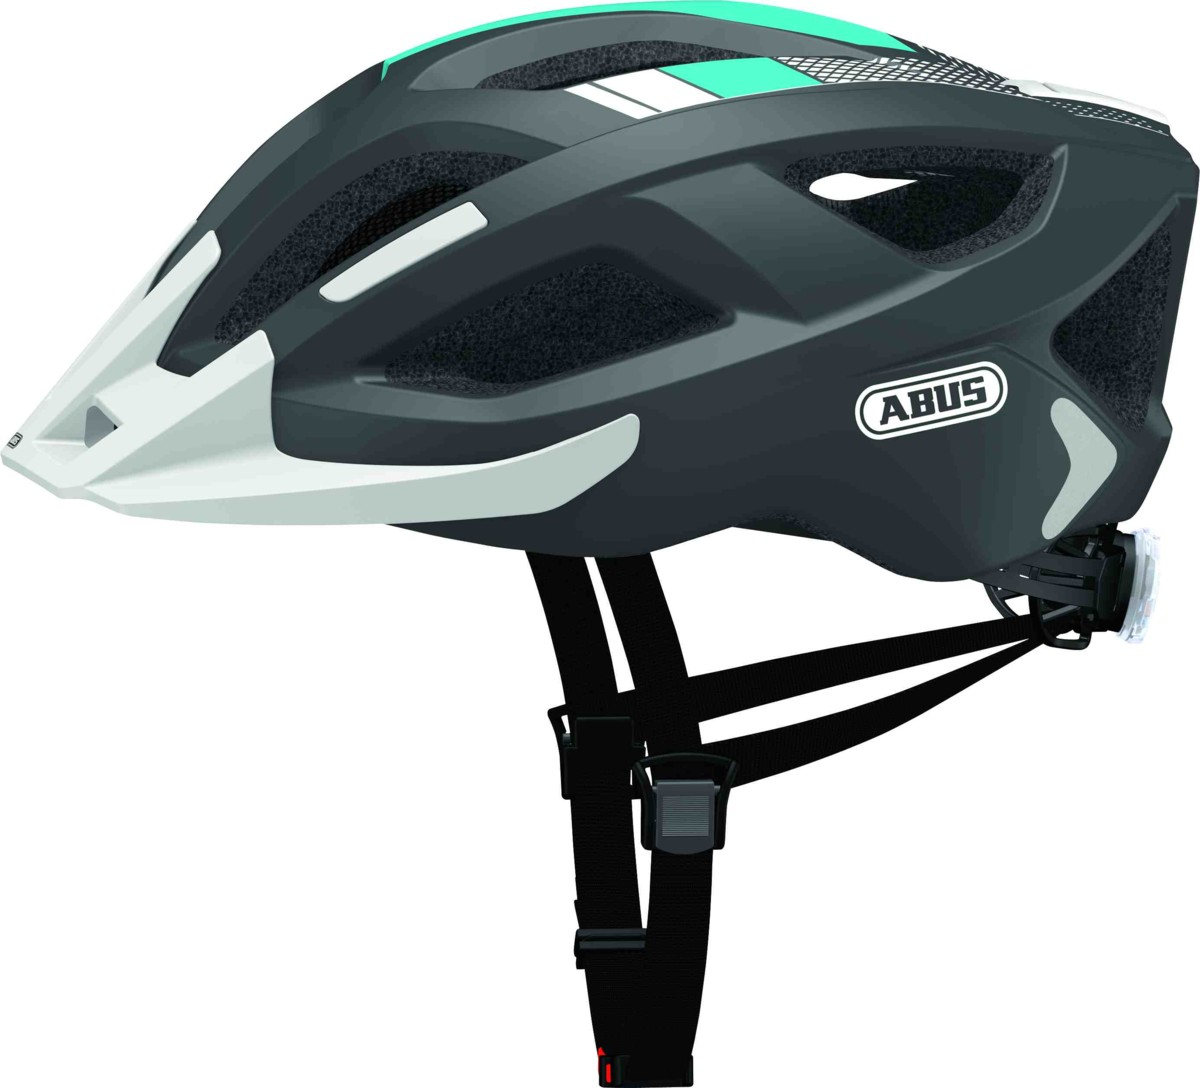 Aduro 2.0 race grey - Aduro 2.0 race grey L